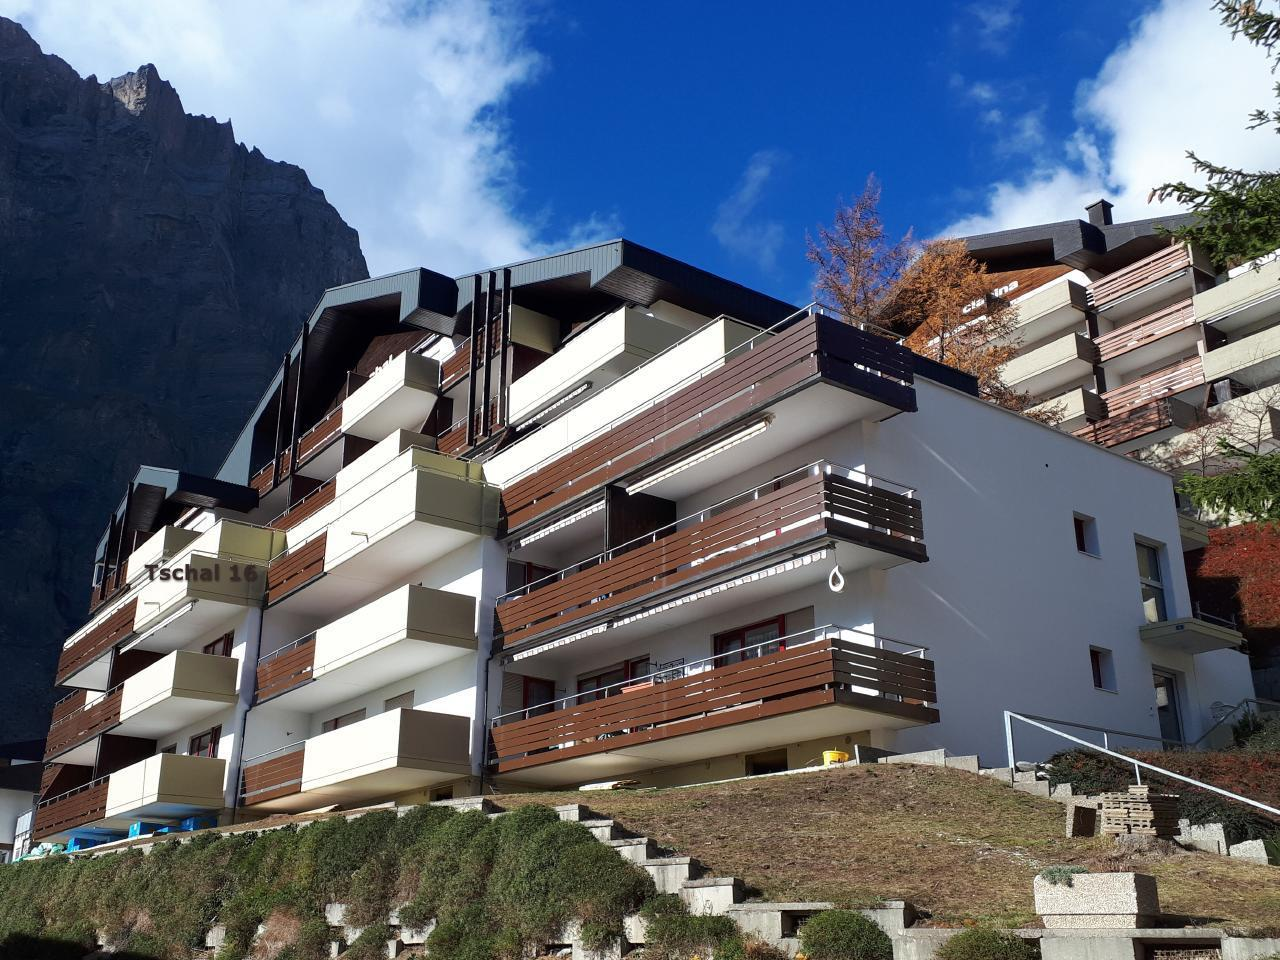 Holiday apartment Tschal  Leukerbad (426689), Leukerbad, Leukerbad, Valais, Switzerland, picture 1